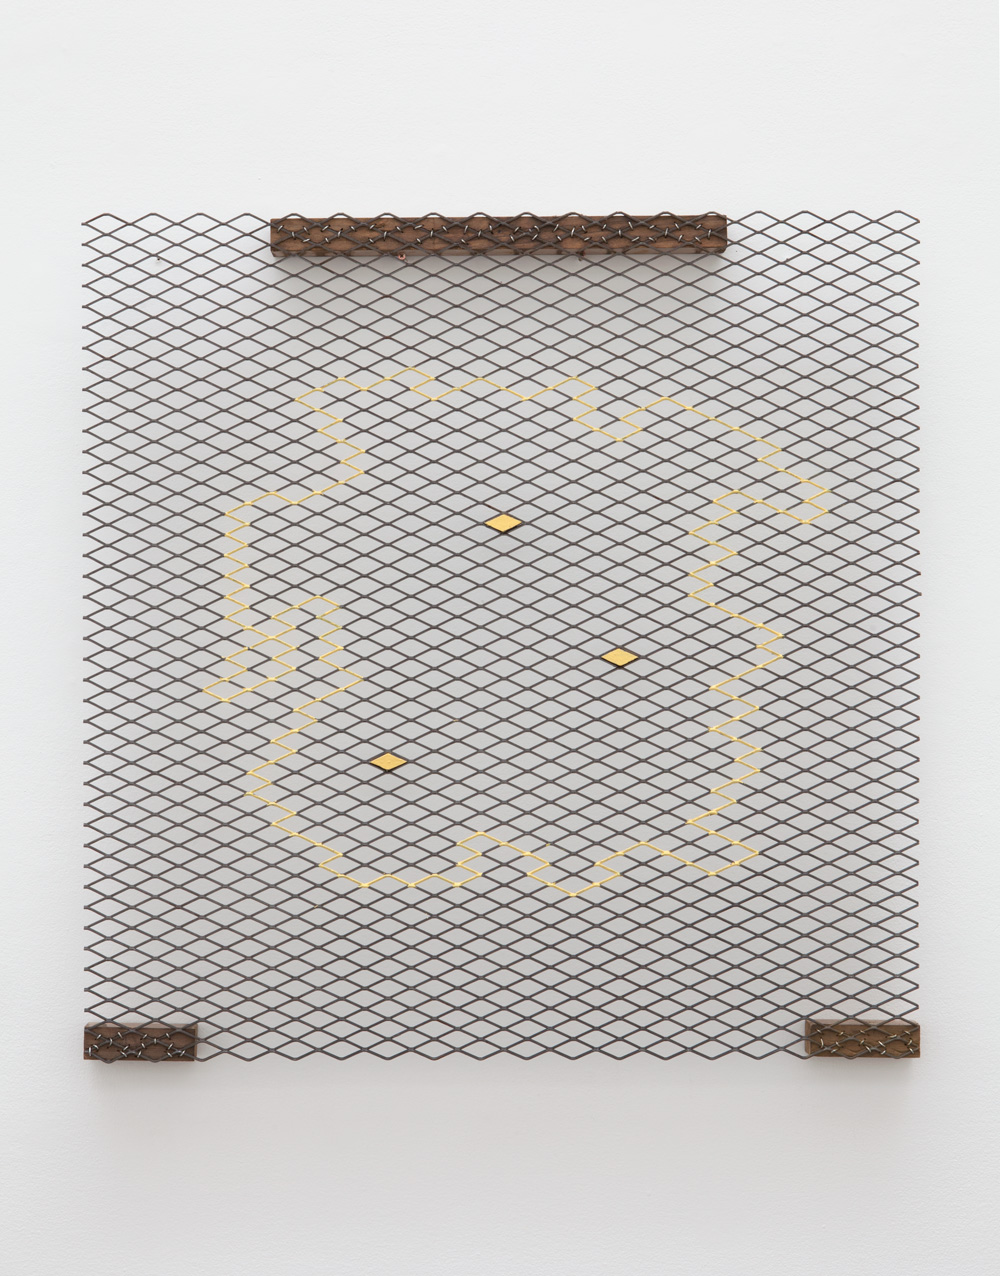 Segregated Placement, Clustered Situation—1 , 2014 分置景集―1 ( Bunchi Keishū―1 ) Mesh, wood, paint 36 3/4 x 36 x 2 1/4 inches 93.3 x 91.4 x 5.7 cm